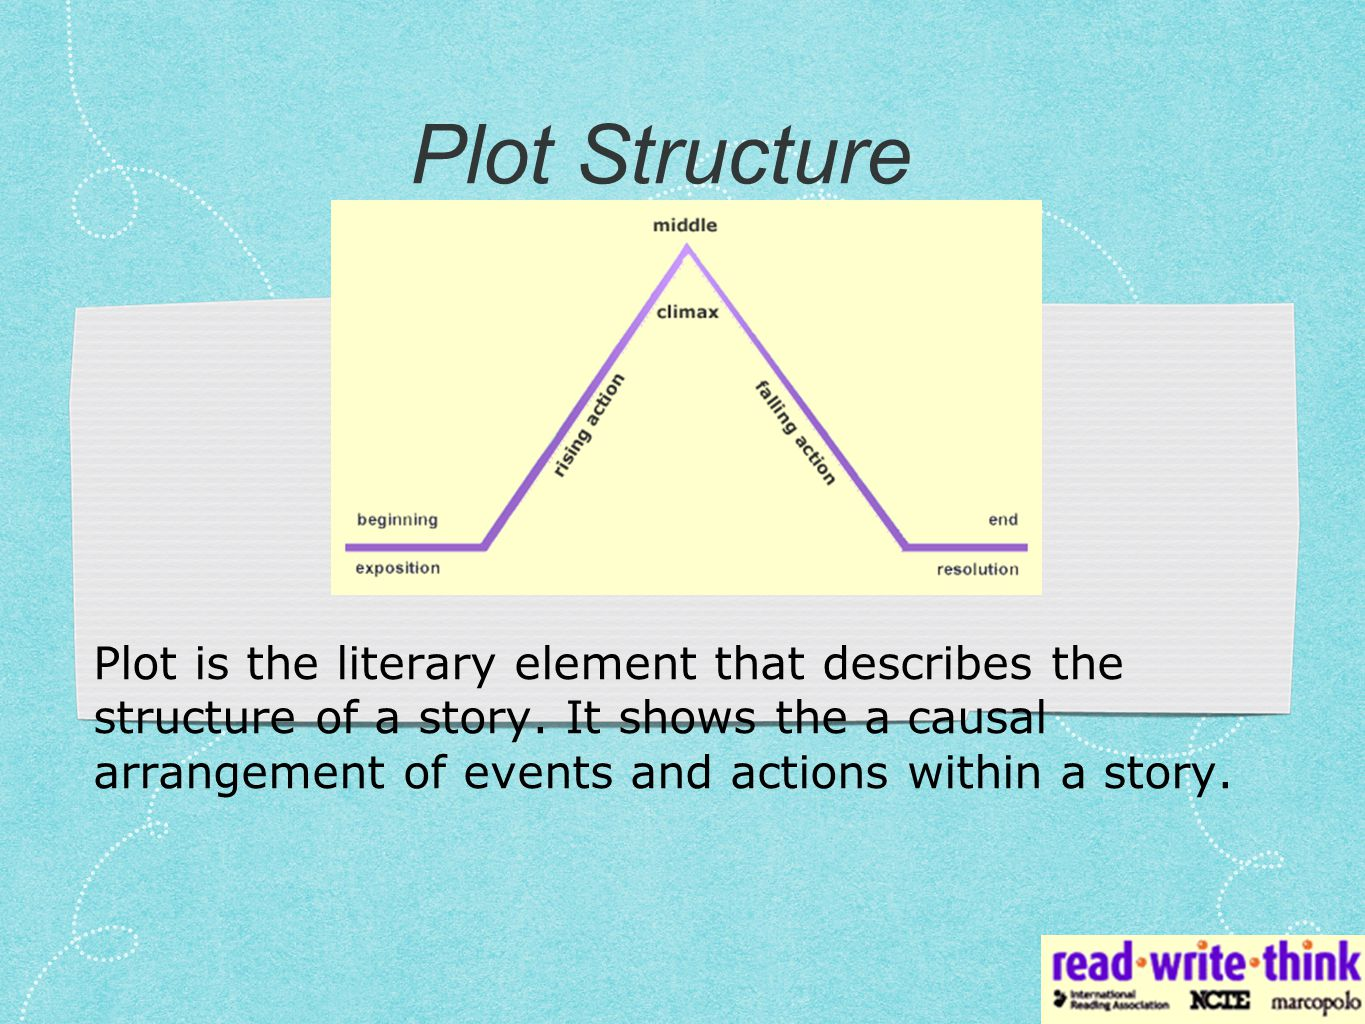 Freytag's Pyramid uses a five-part system to describe a story's plot.